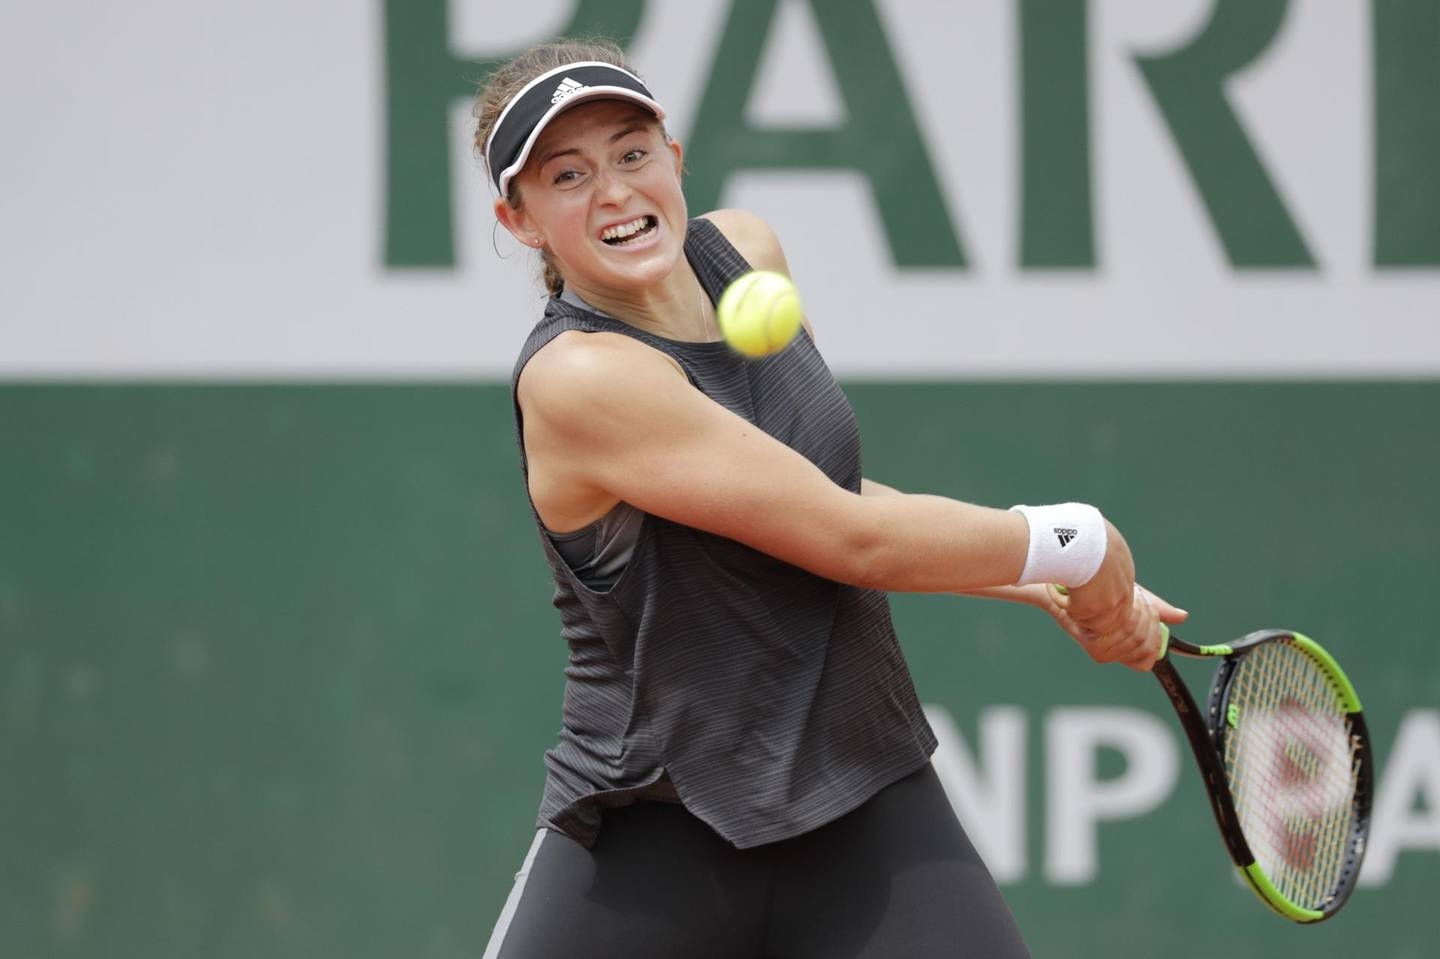 Latvia's Jelena Ostapenko returns the ball during a training session in Paris on May 24, 2018, ahead of The Roland Garros 2018 French Open tennis tournament. / AFP / Thomas SAMSON